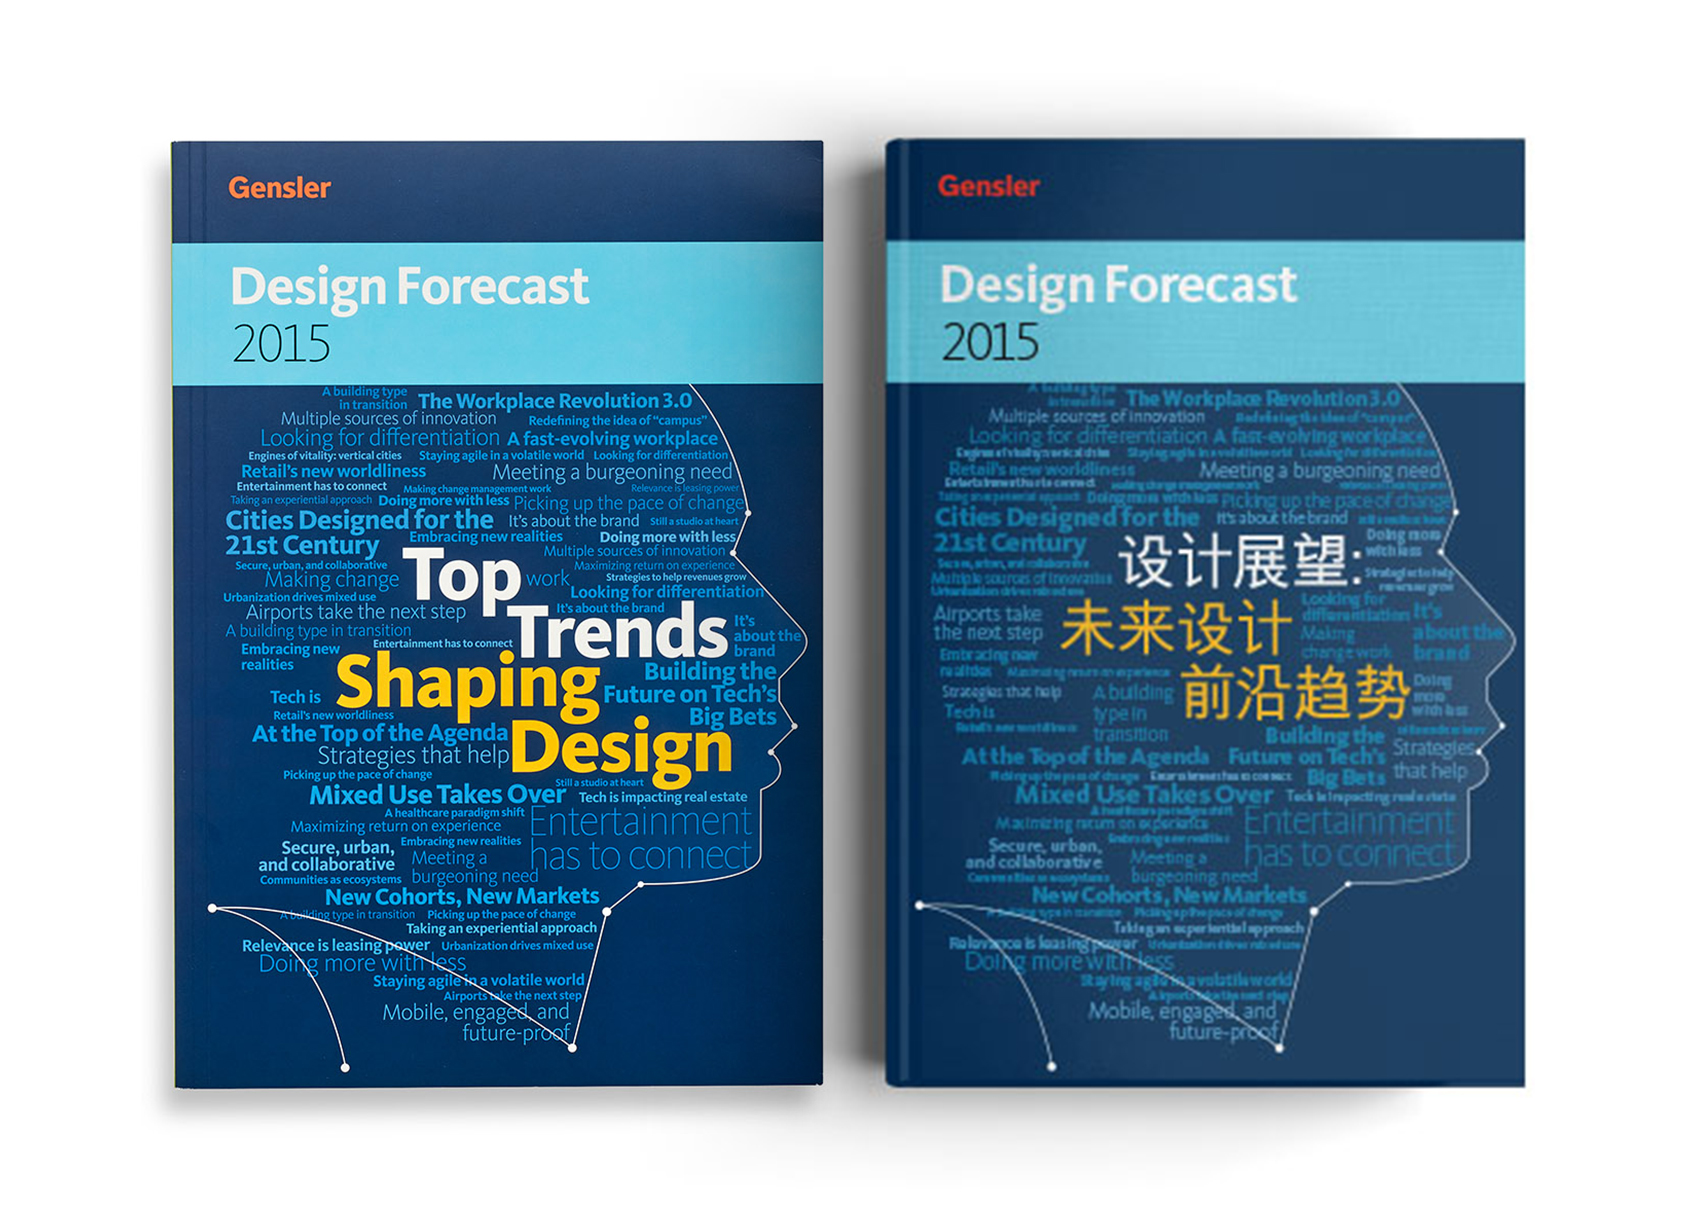 Design Forecast 2015 in English and Mandarin.